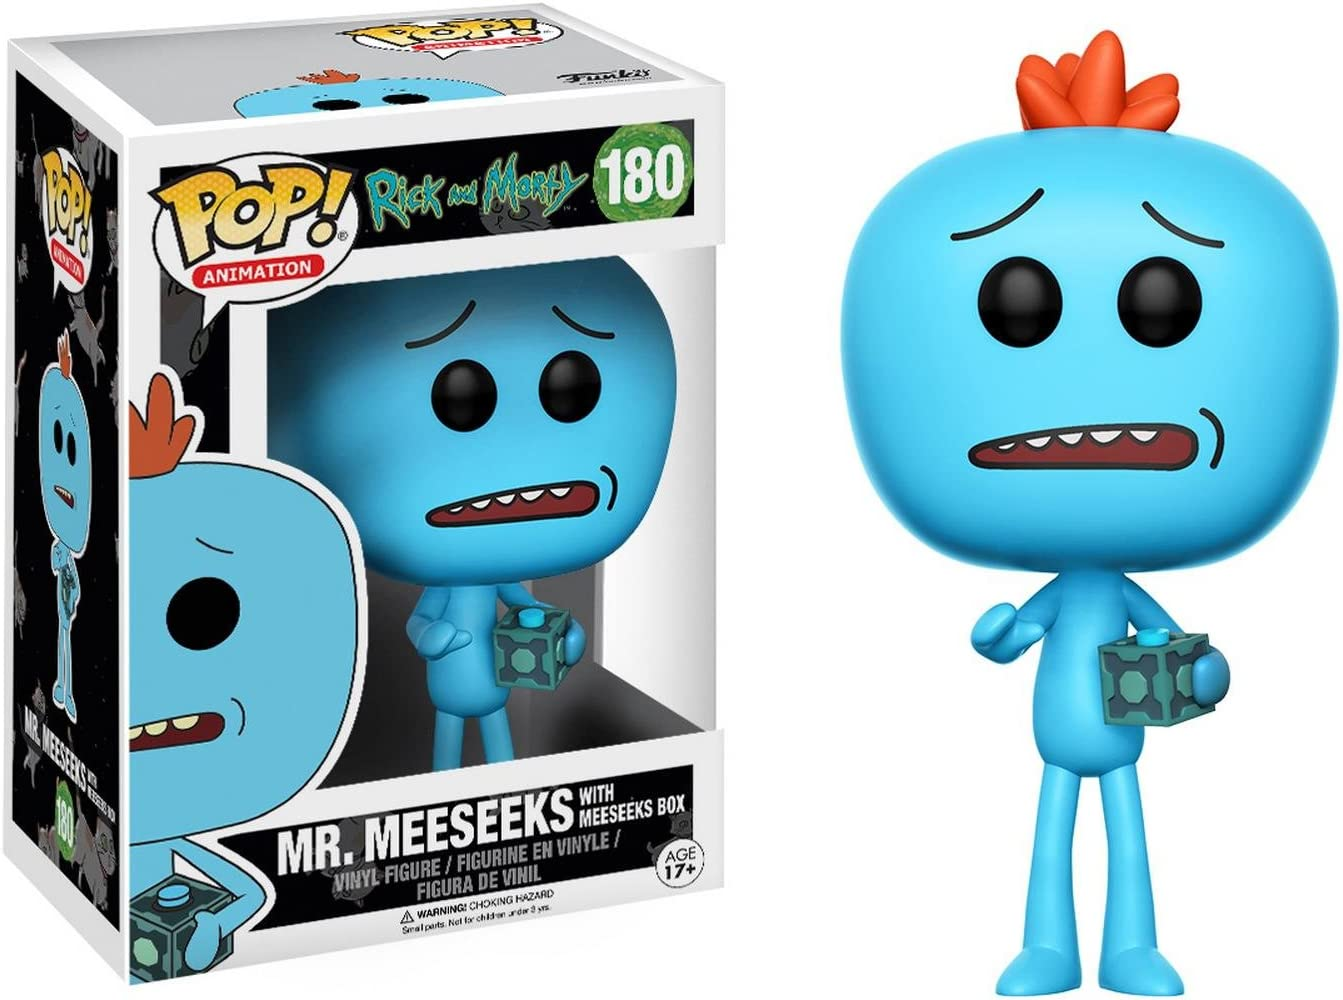 Figura Pop Rick & Morty Mr Meeseeks: Amazon.es: Juguetes y juegos